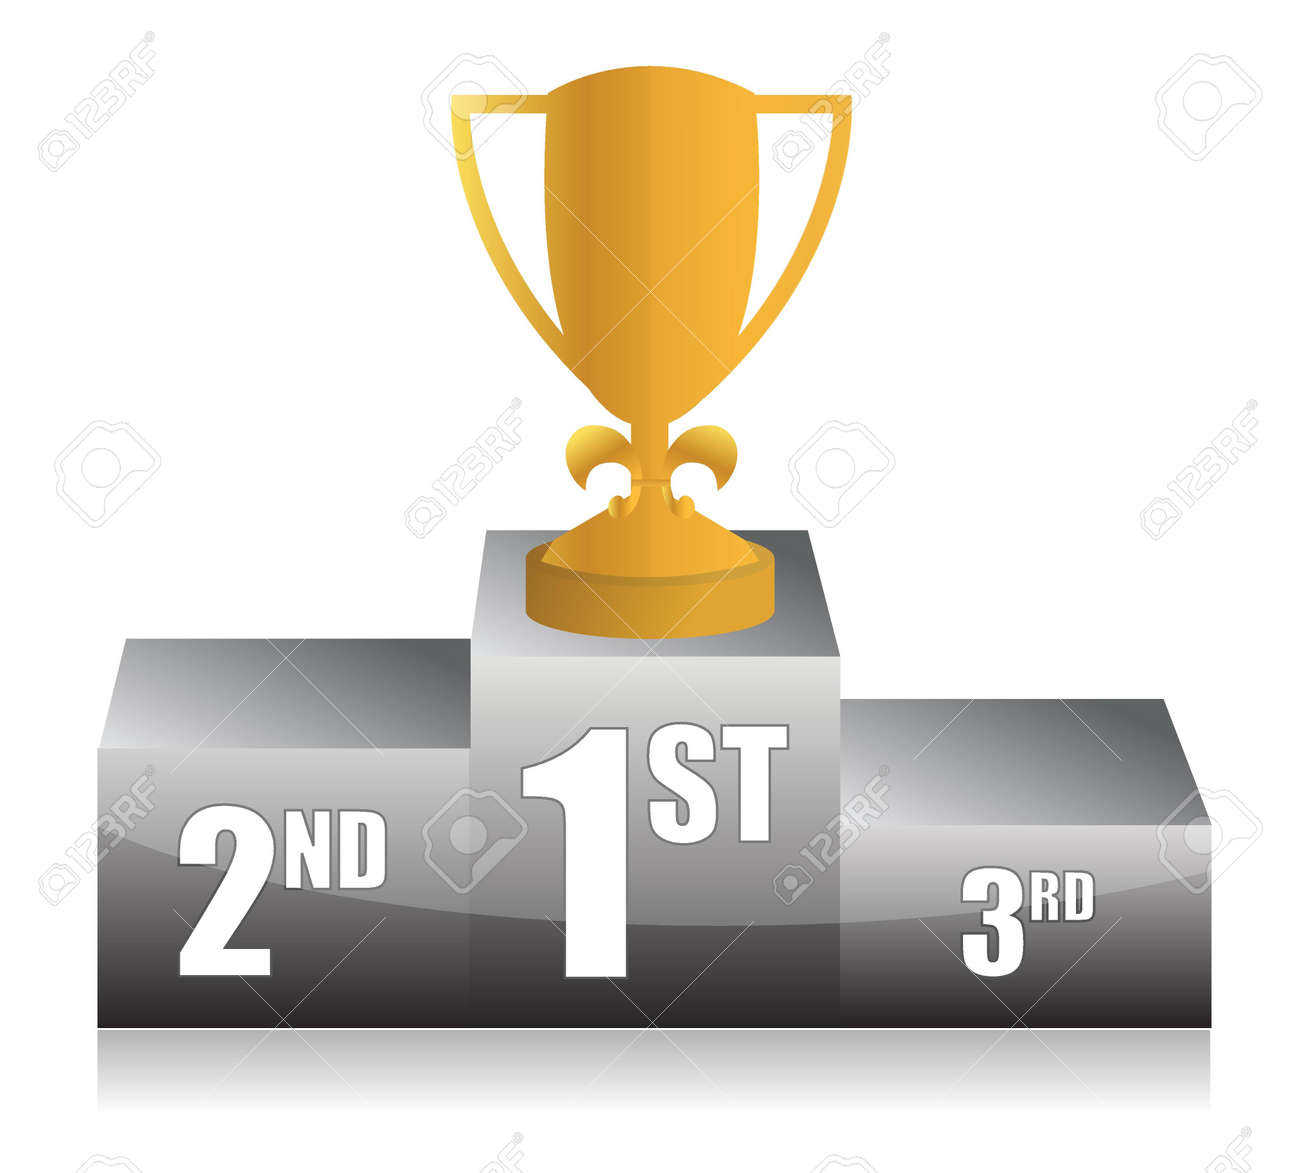 gold trophy cup 1st place illustration design Stock Vector - 16116827